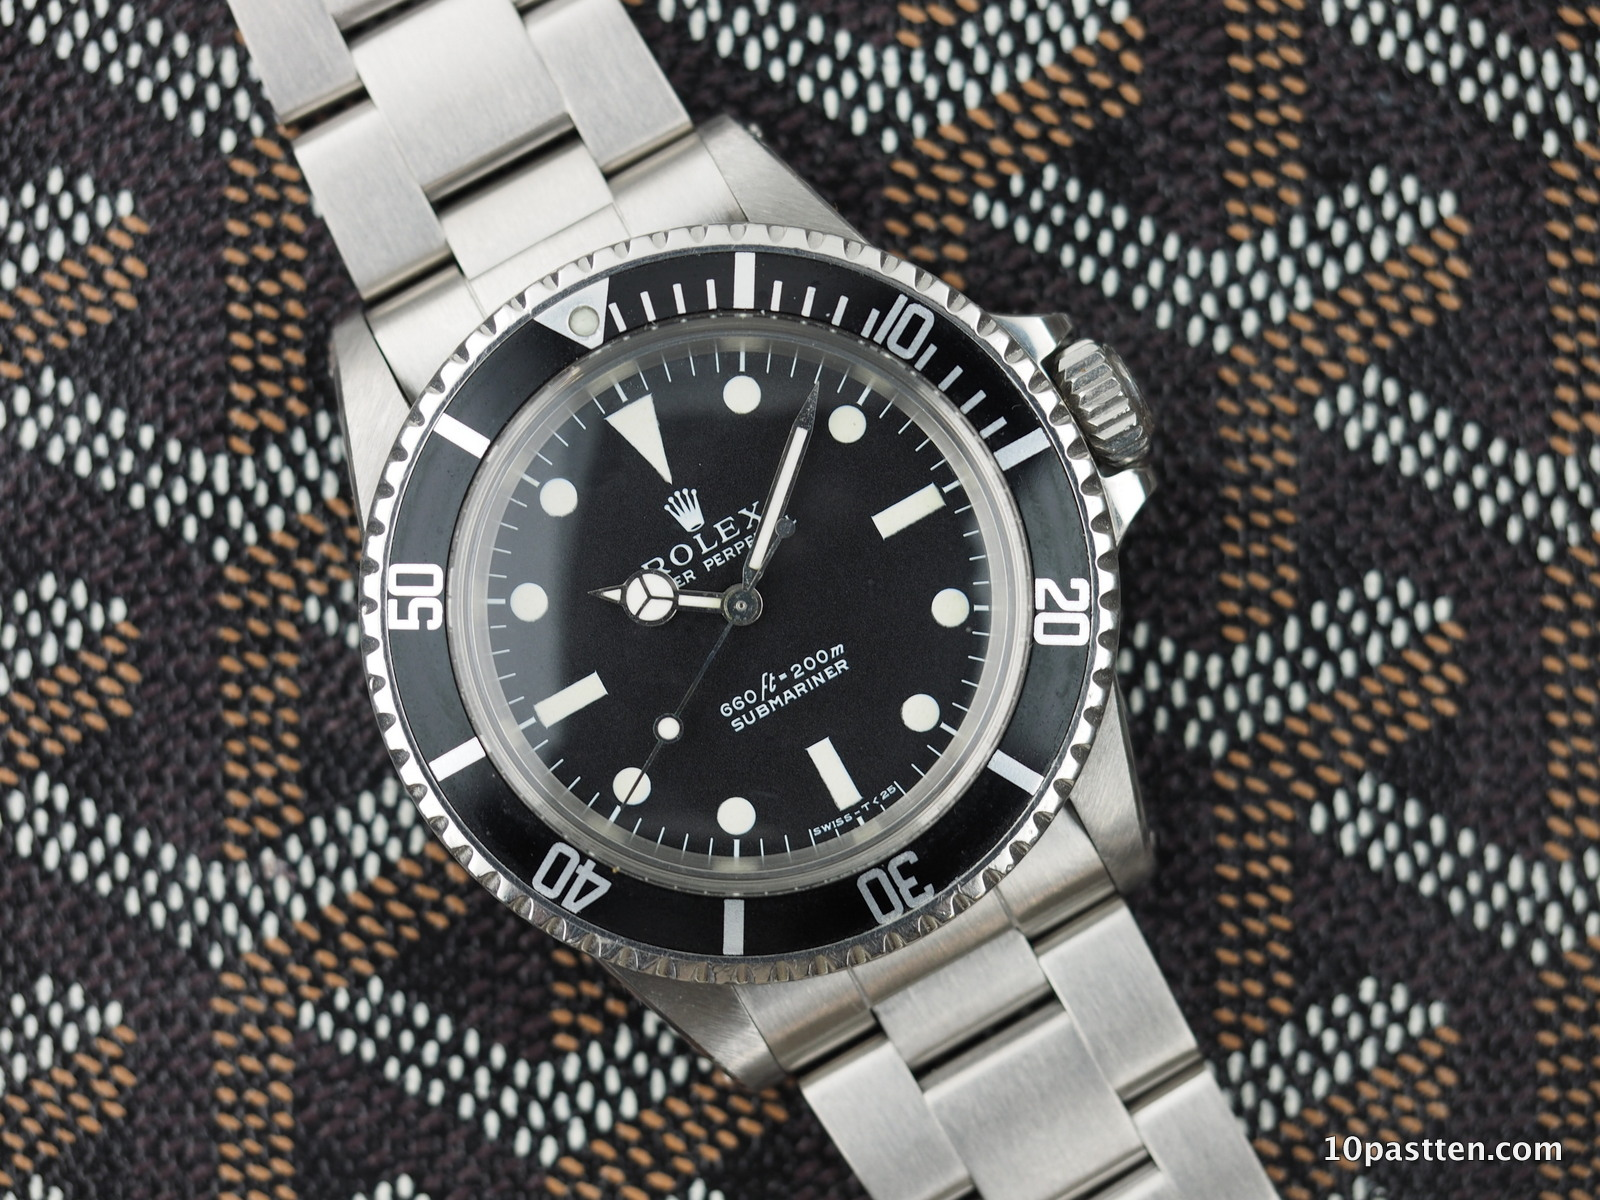 Is this Ref. 5513 the same as the Ref. 114060?No, but the retail price of these similar watches couldn't be further apart.